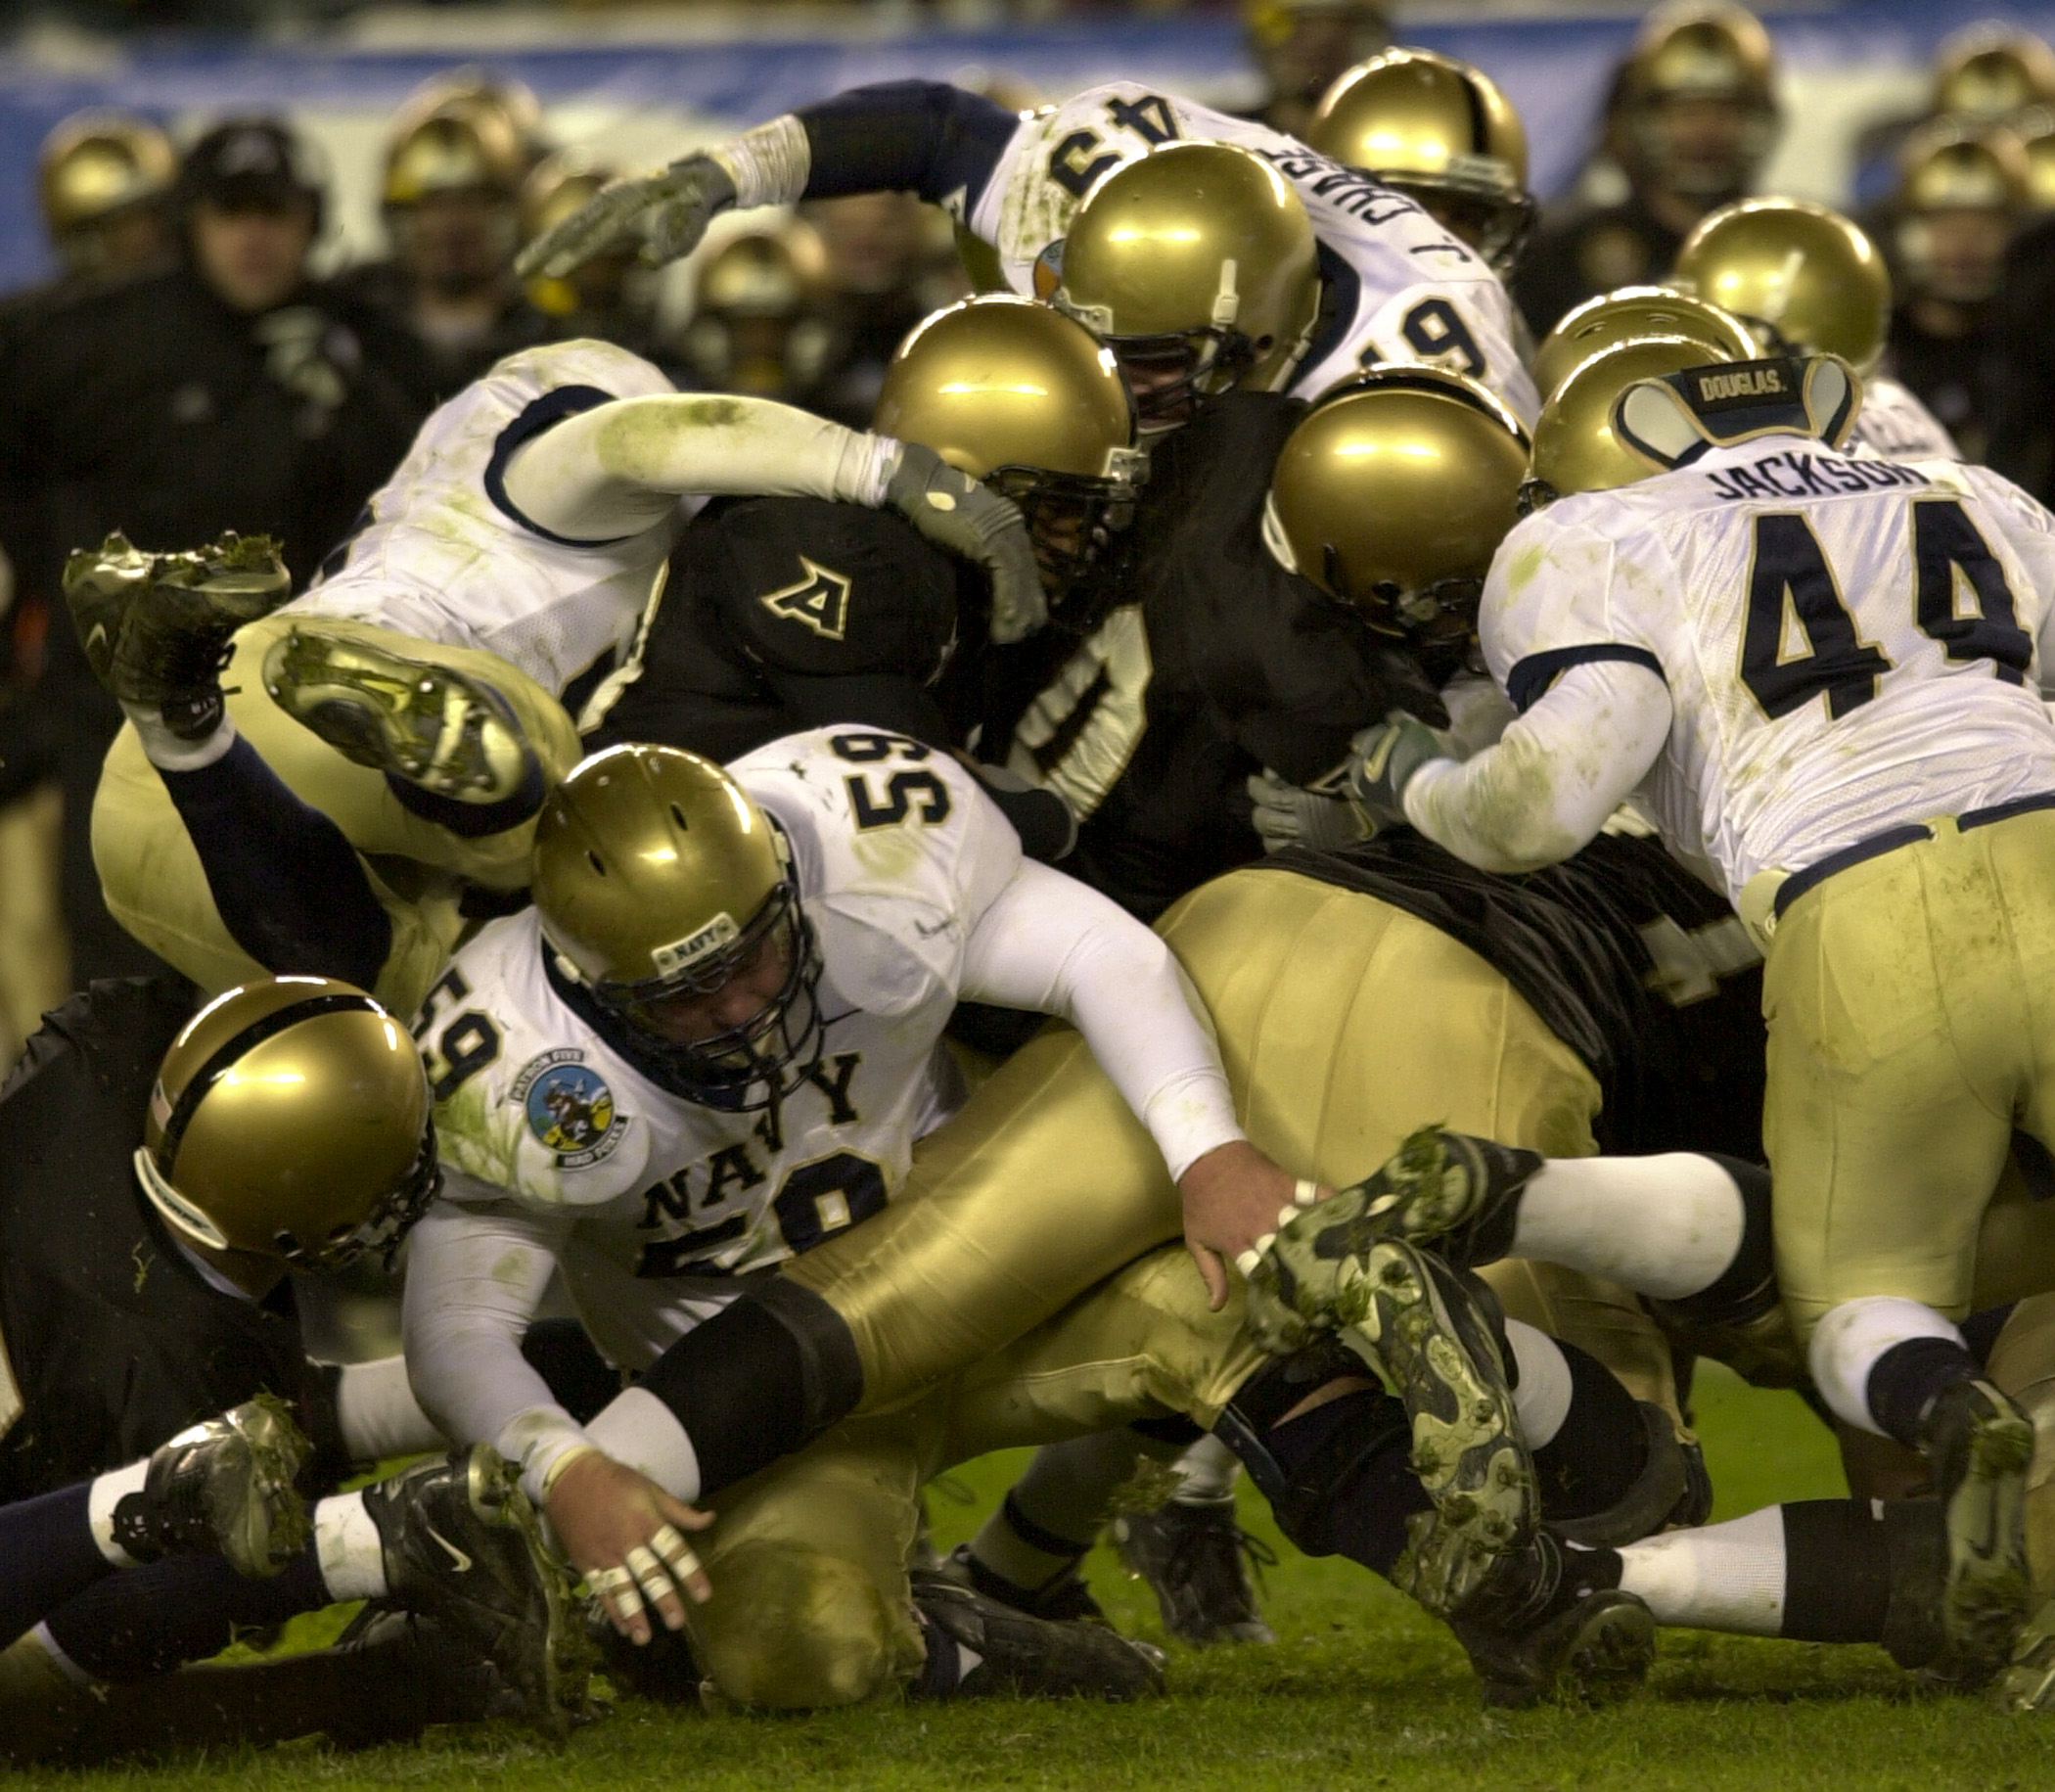 http://upload.wikimedia.org/wikipedia/commons/2/23/US_Navy_031206-N-9693M-517_Army_and_Navy_football_players_vie_for_control_of_the_ball_during_the_104th_Army_Navy_Game.jpg